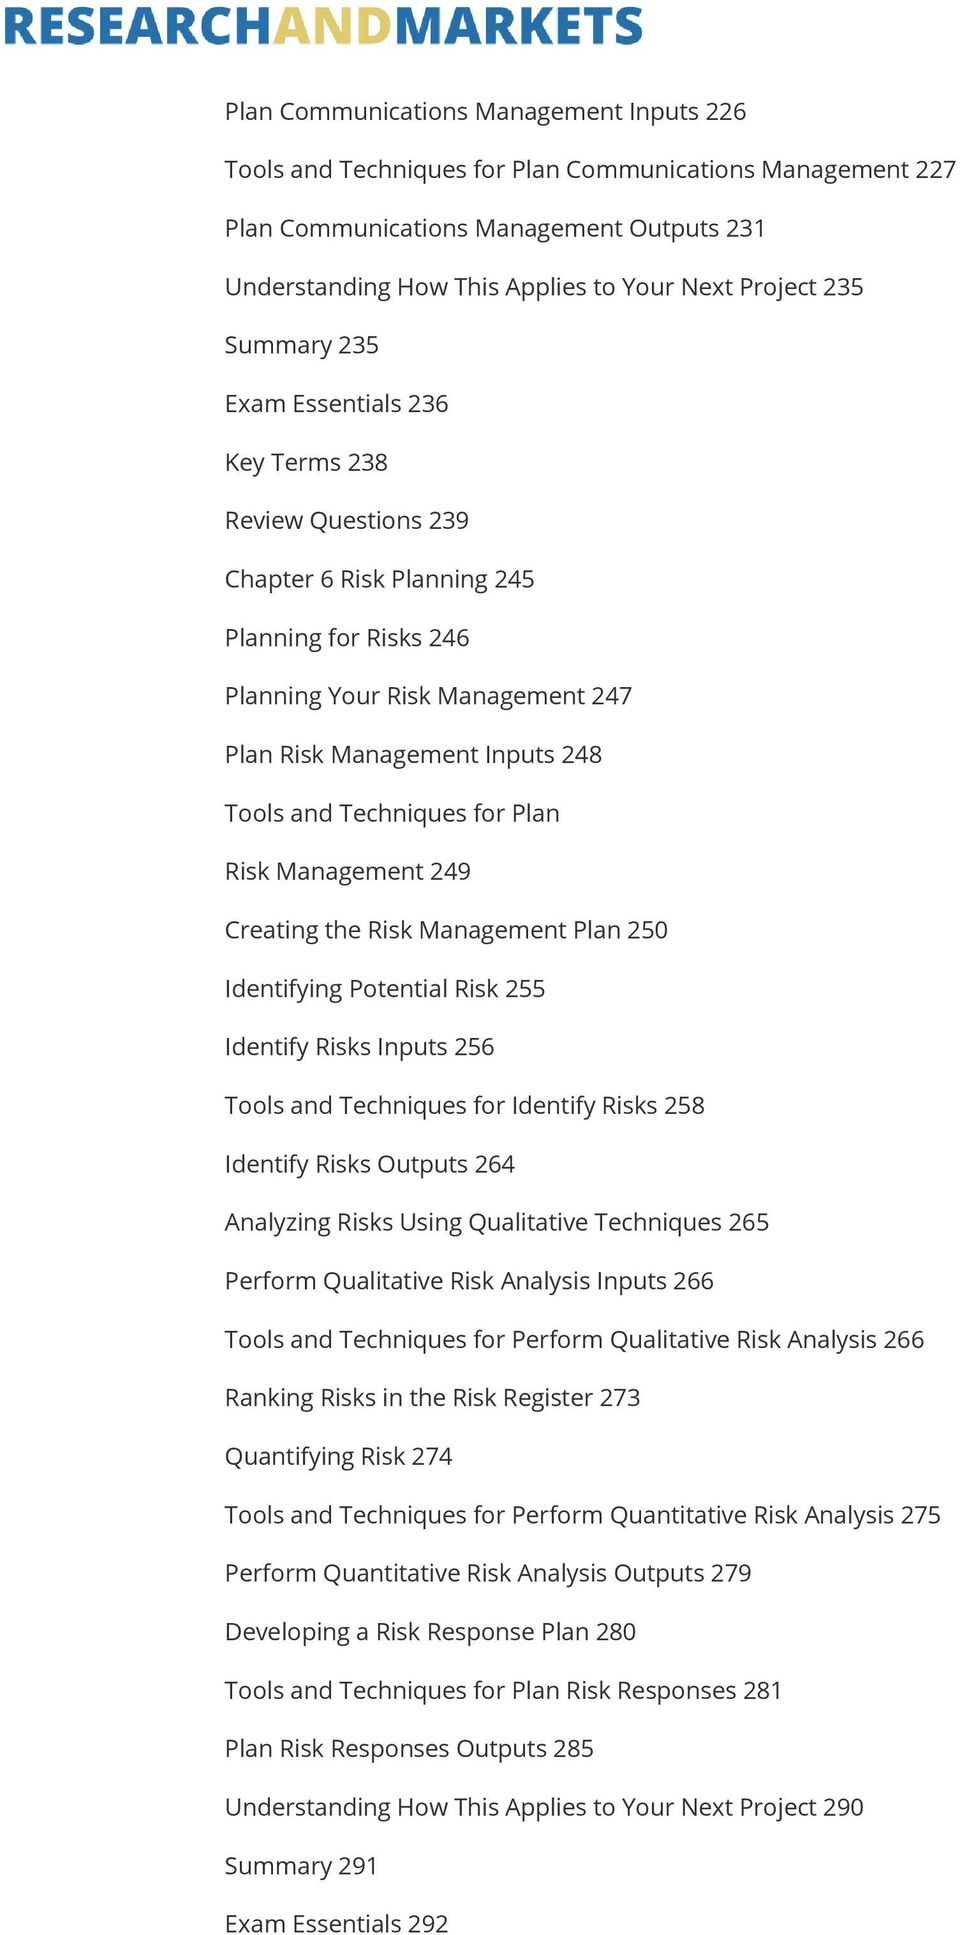 Techniques for Plan Risk Management 249 Creating the Risk Management Plan 250 Identifying Potential Risk 255 Identify Risks Inputs 256 Tools and Techniques for Identify Risks 258 Identify Risks